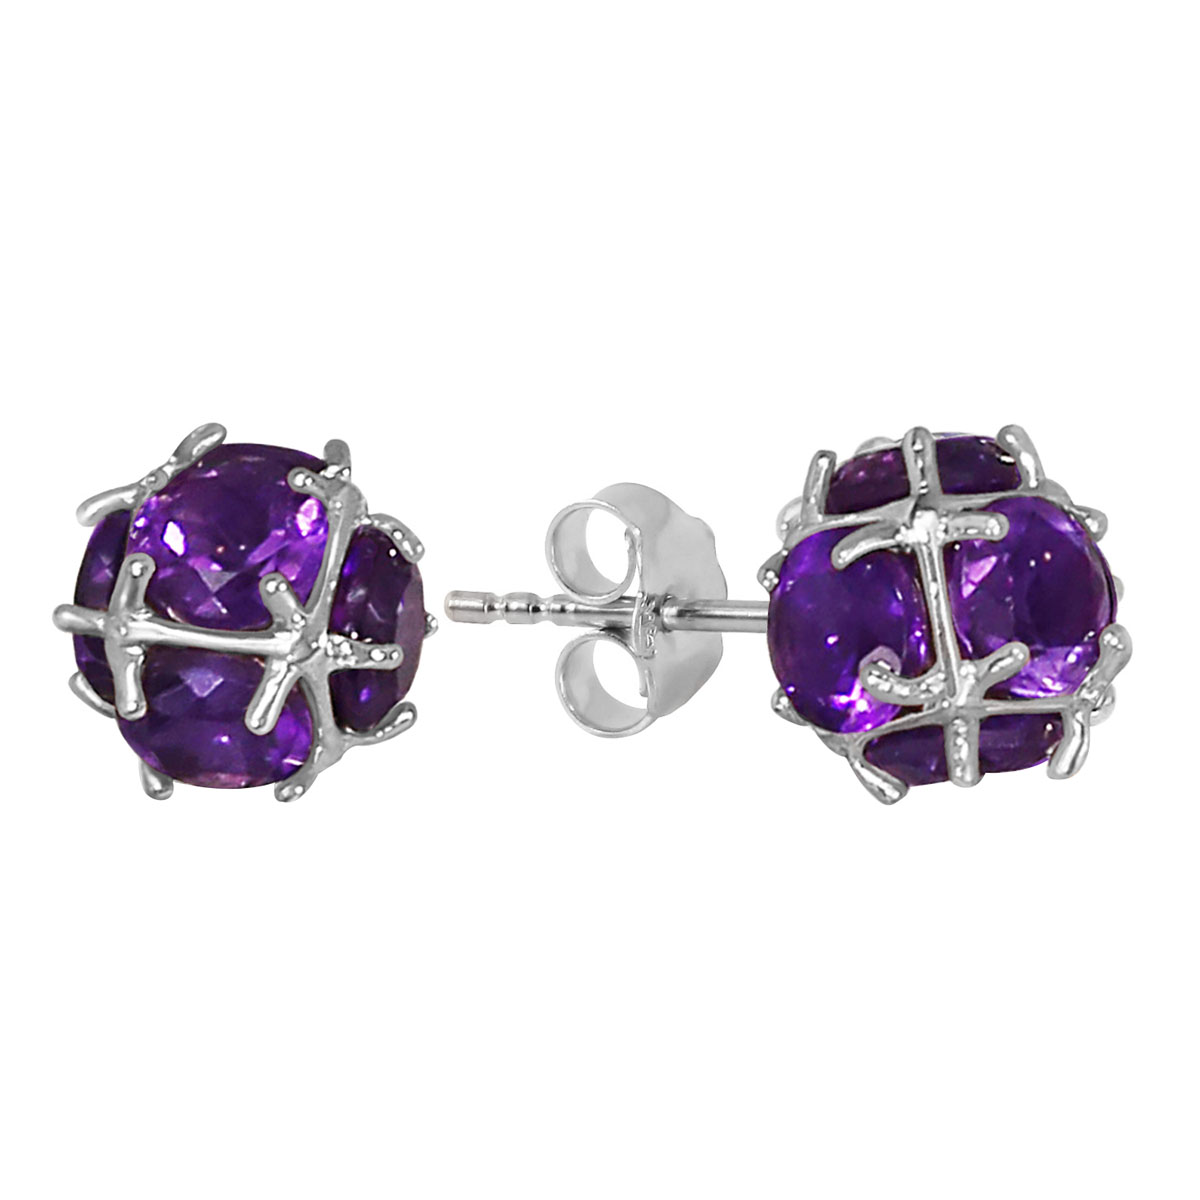 Amethyst Infinity Stone Earrings 5.7 ctw in 9ct White Gold